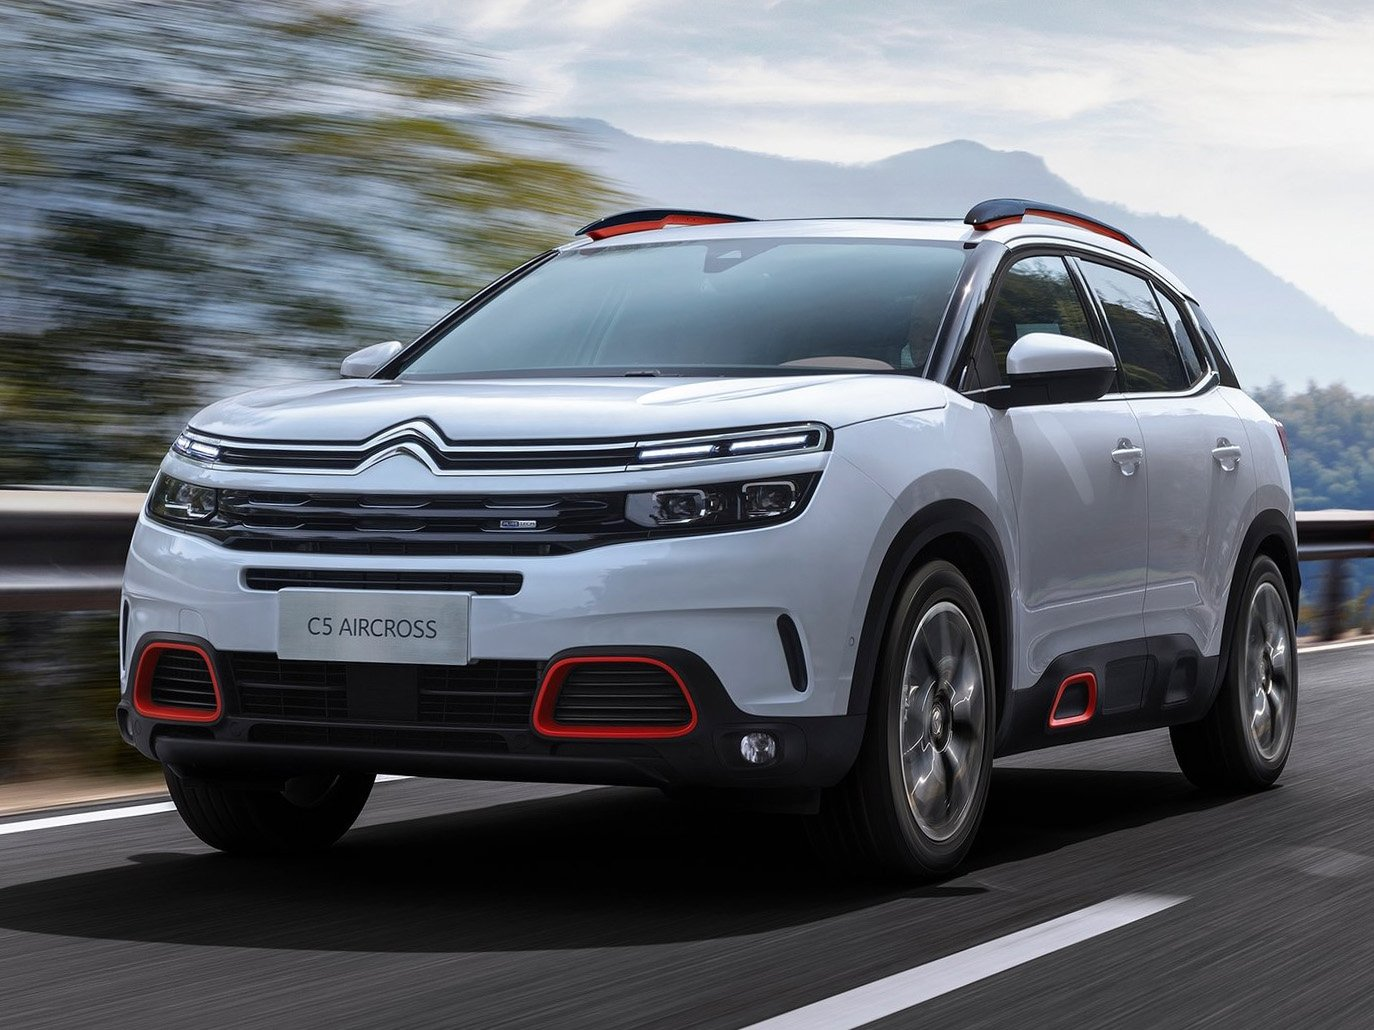 Citroën C5 Aircross - recenze a ceny